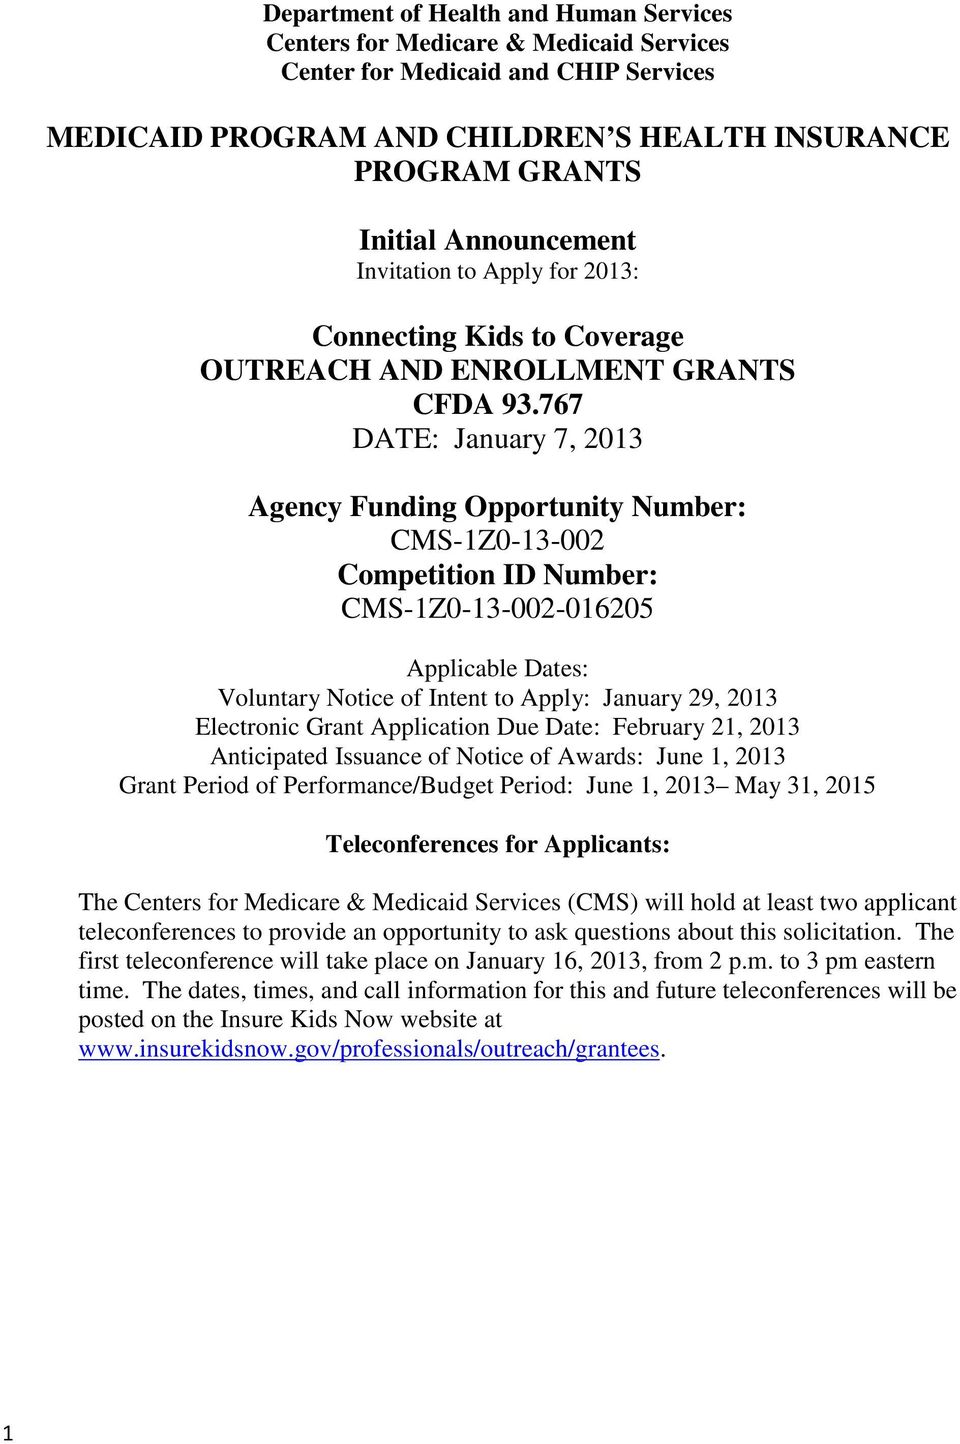 767 DATE: January 7, 2013 Agency Funding Opportunity Number: CMS-1Z0-13-002 Competition ID Number: CMS-1Z0-13-002-016205 Applicable Dates: Voluntary Notice of Intent to Apply: January 29, 2013